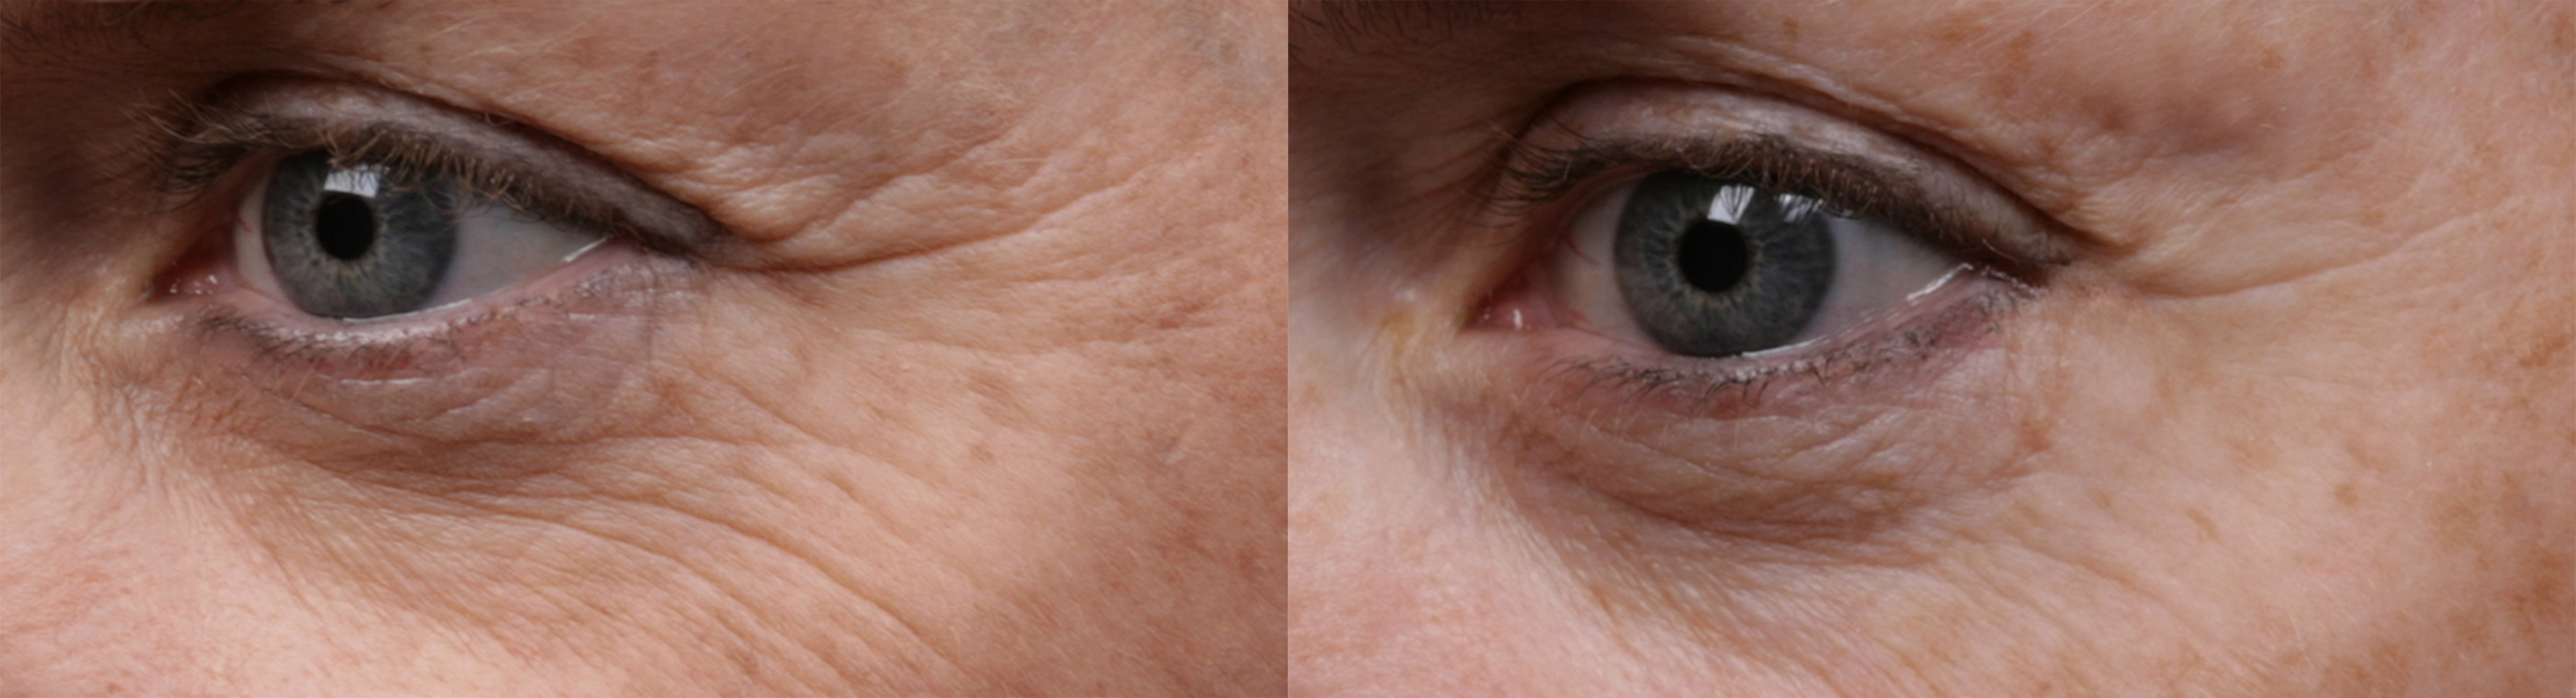 SilcSkin_Eyes_before_and_after